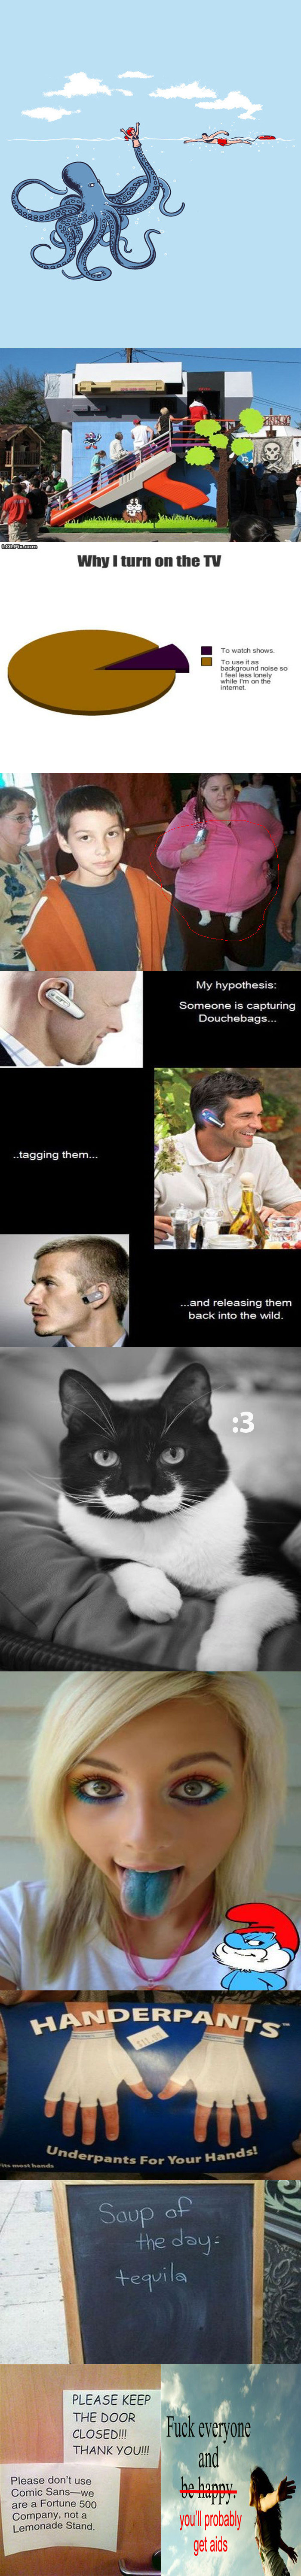 funny7 - some funny pics!